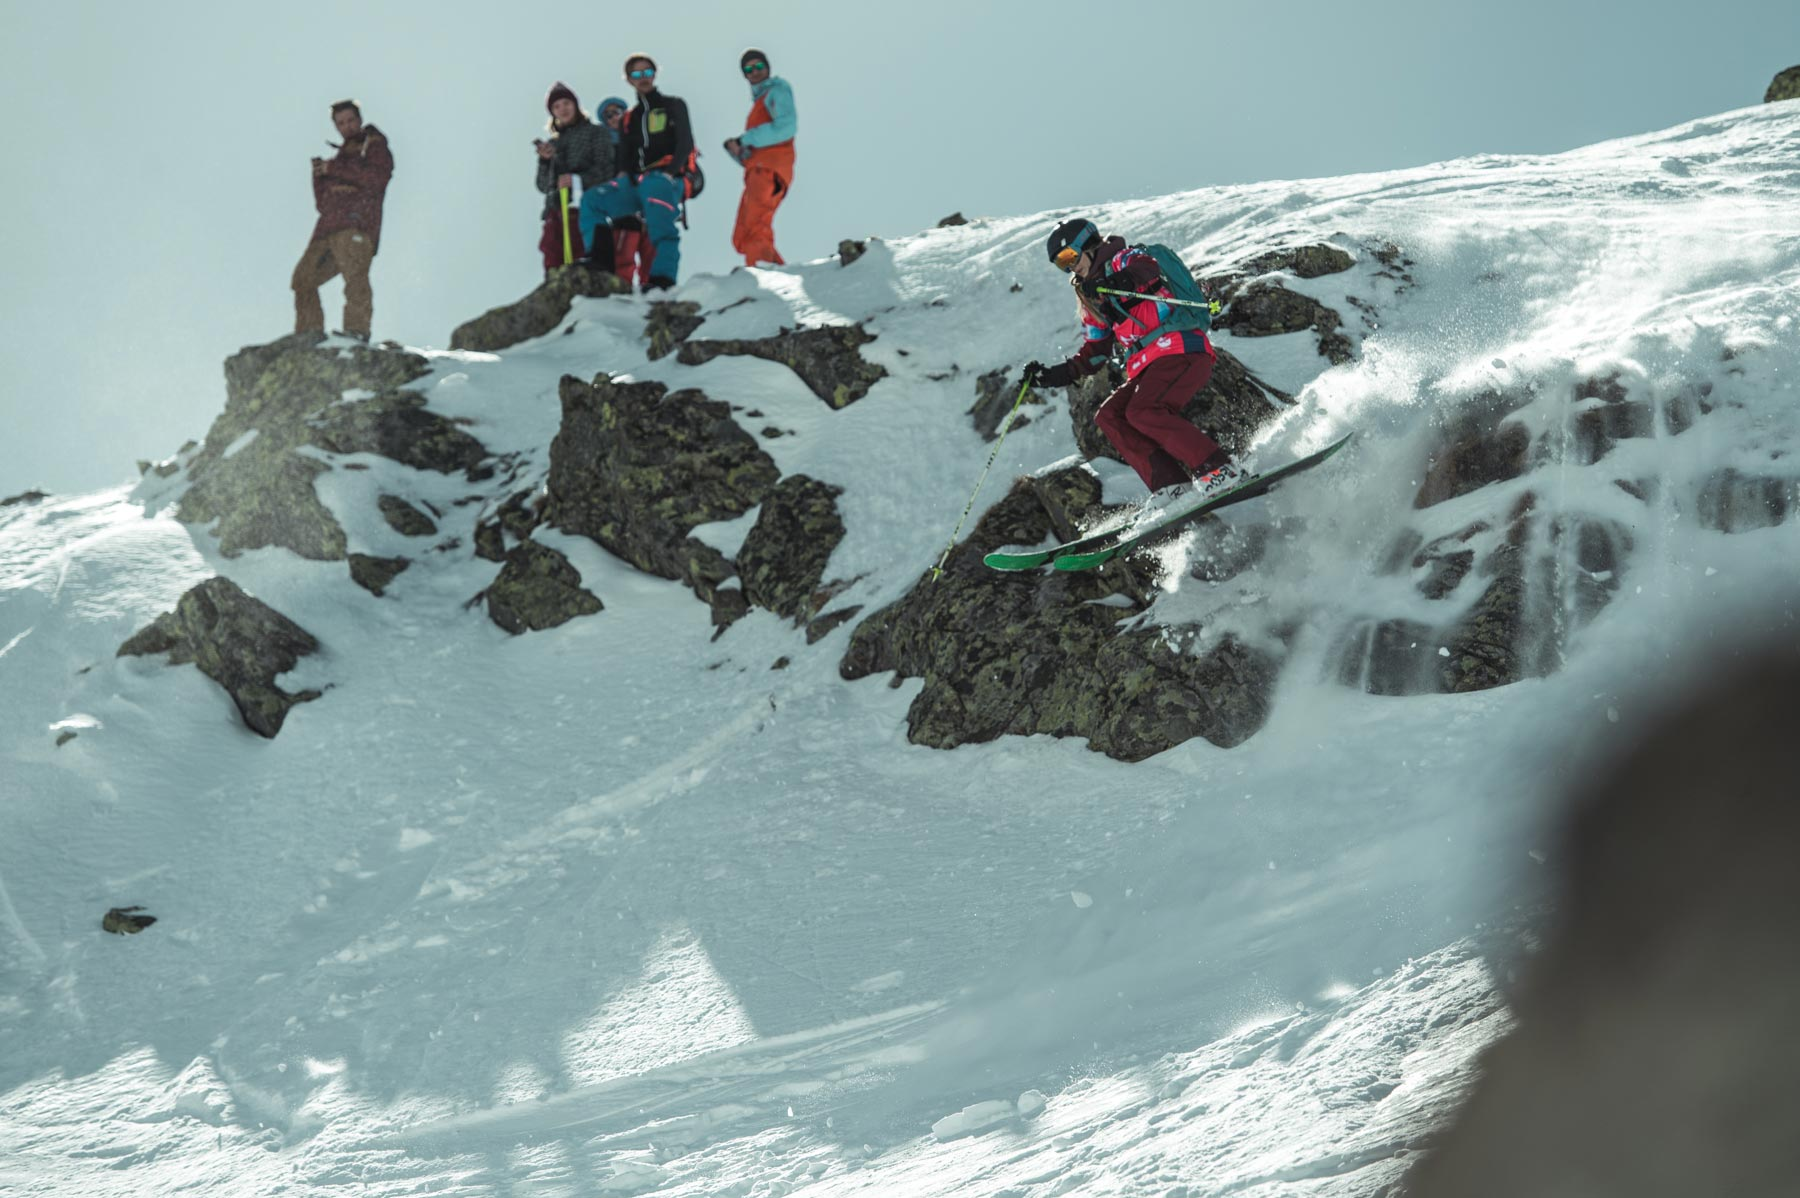 Open Faces Freeride Contests 2017 - Obergurgl Hochgurgl - Foto: Andreas Vigl